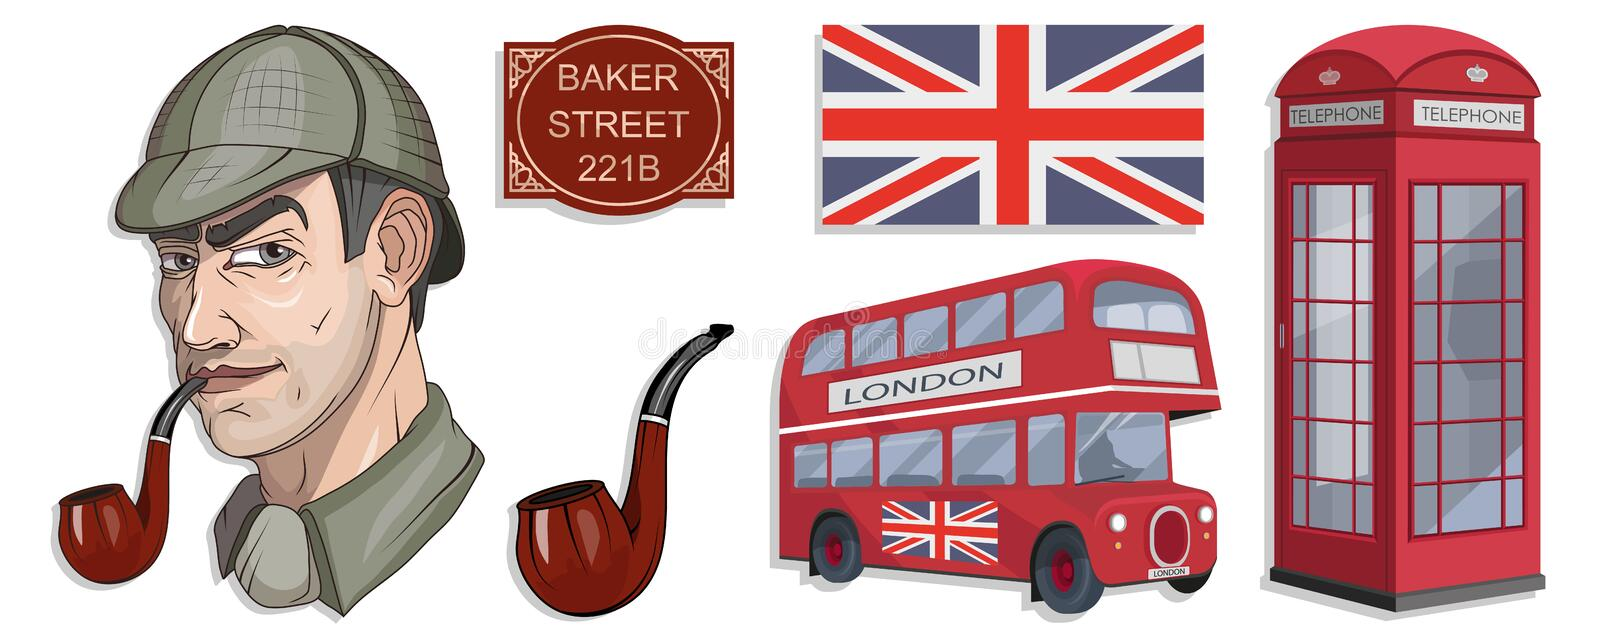 Sherlock Holmes vector, London, ilustration with Sherlock Holmes, Baker street 221B, Sherlock Holmes hat, famous London private stock illustration